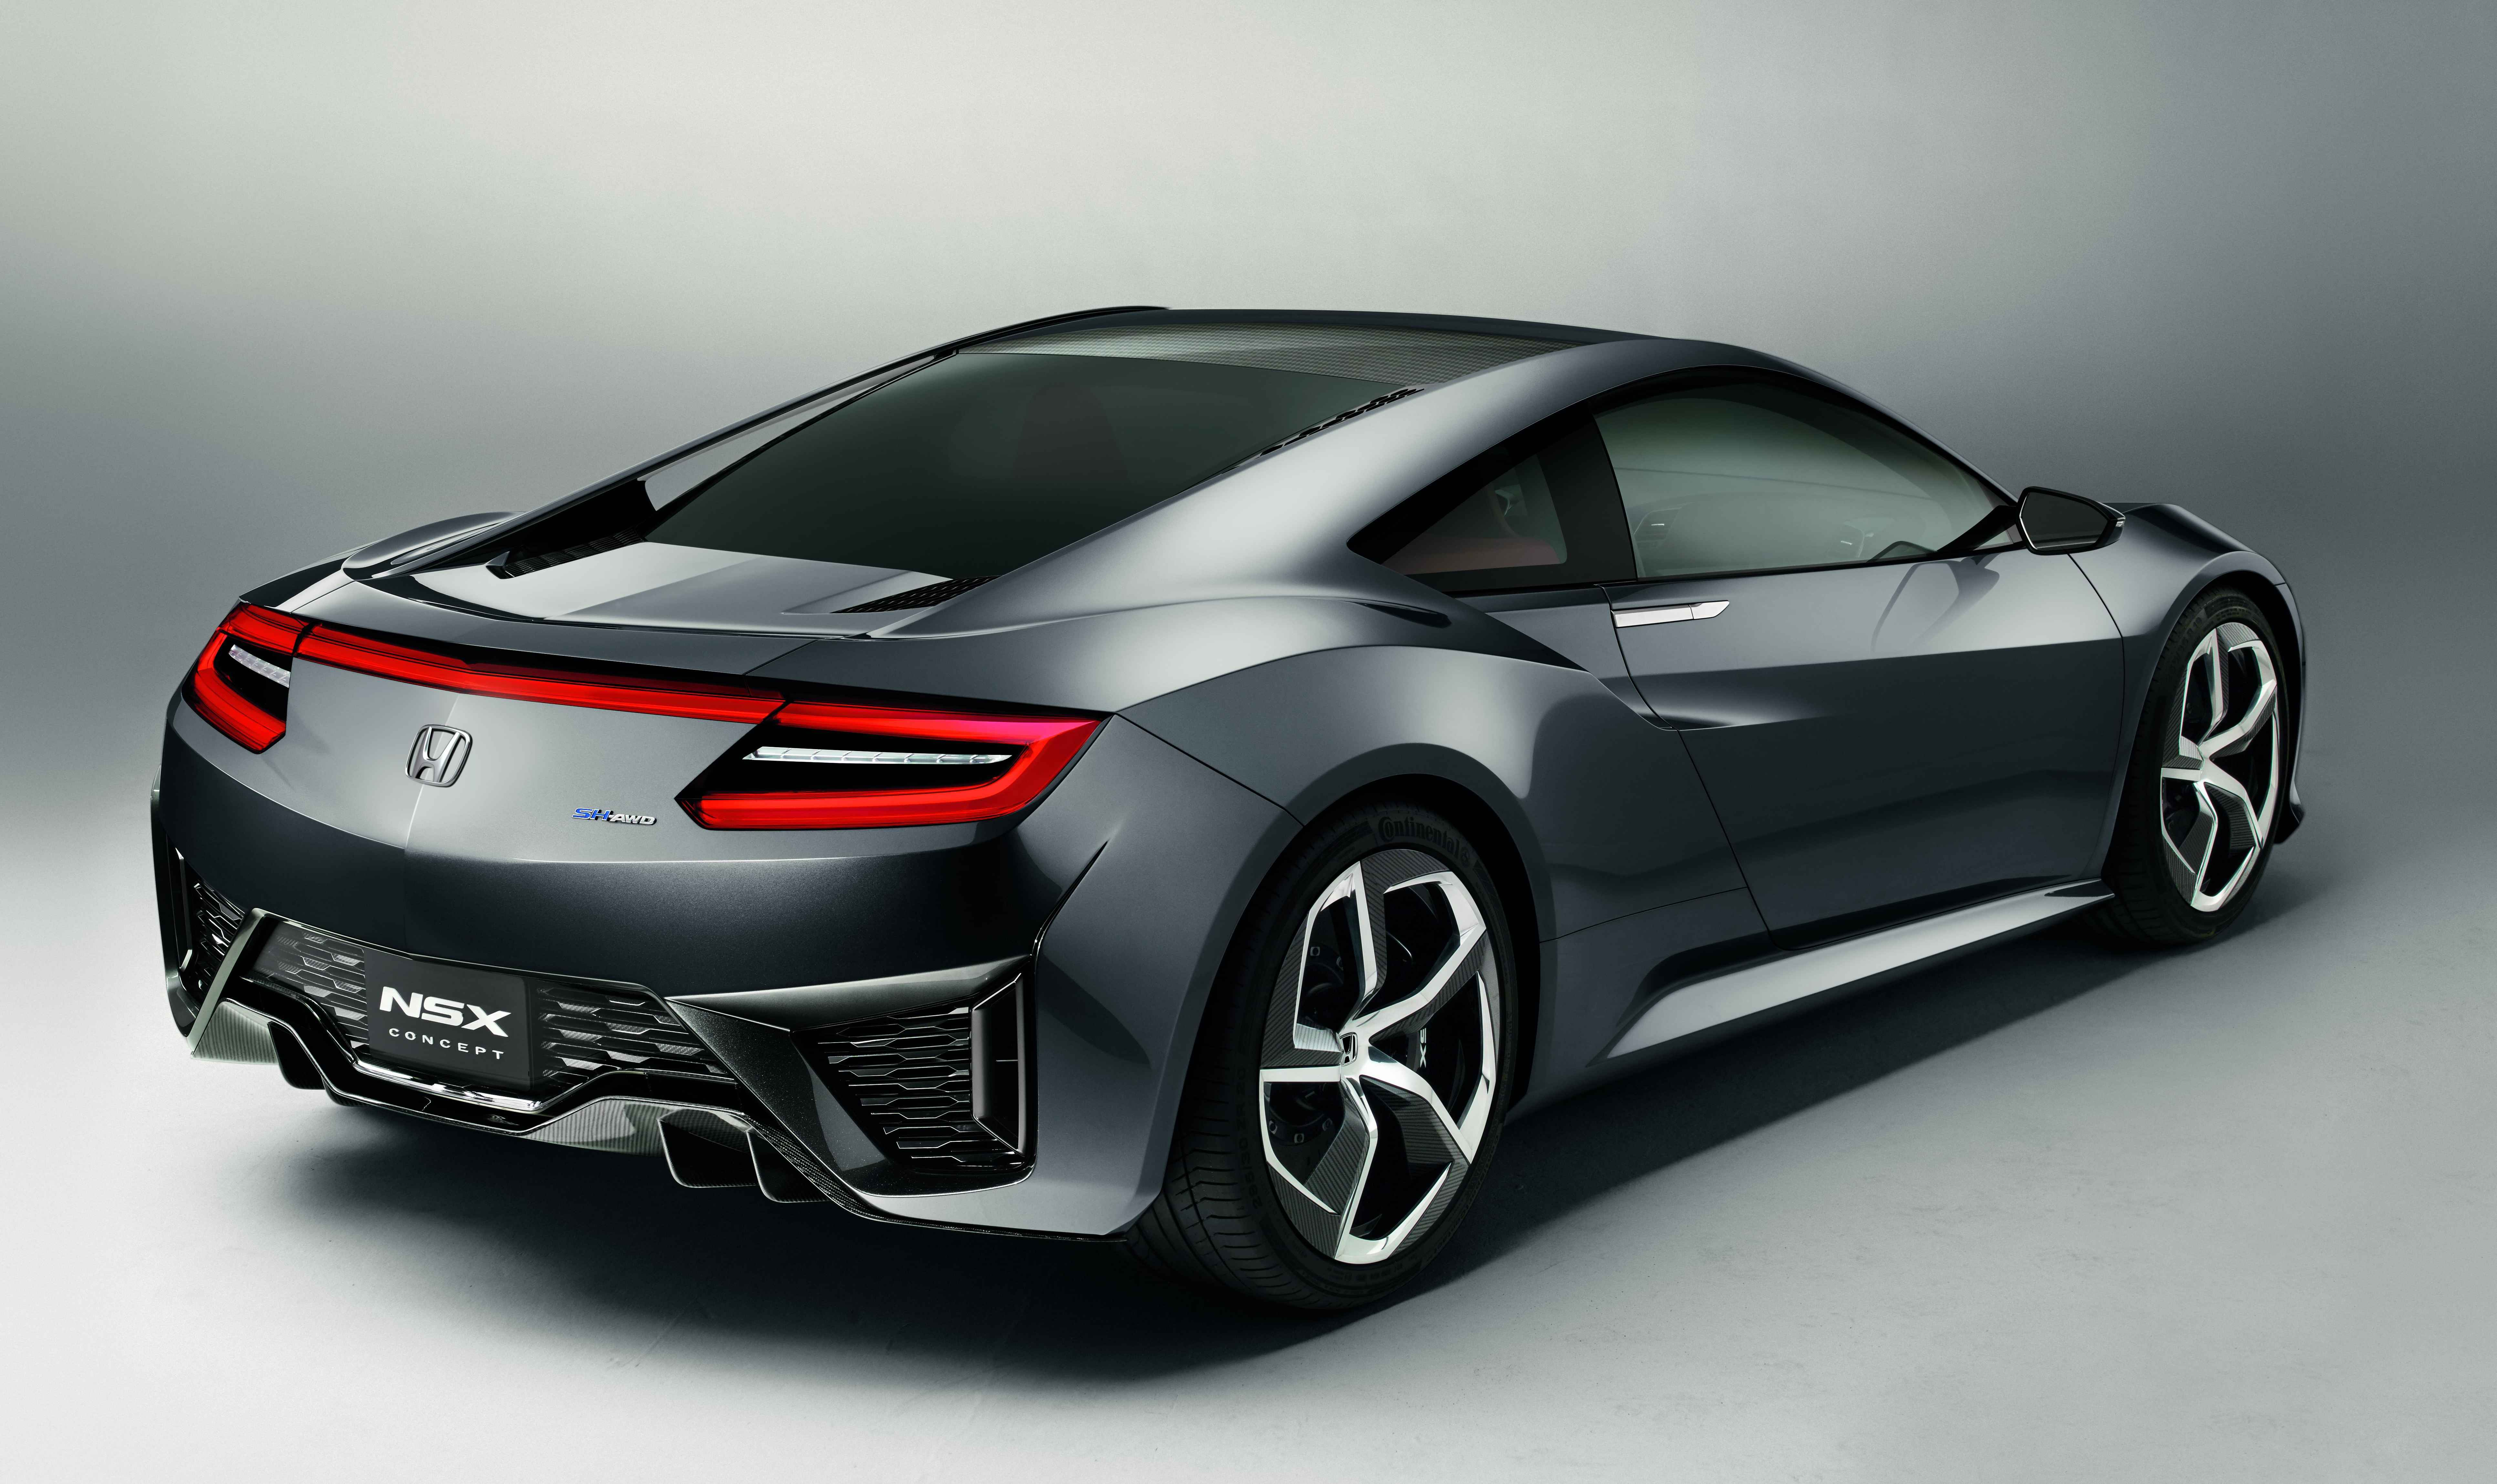 Newmotoring 187 Orders Open For New Honda Nsx Newmotoring